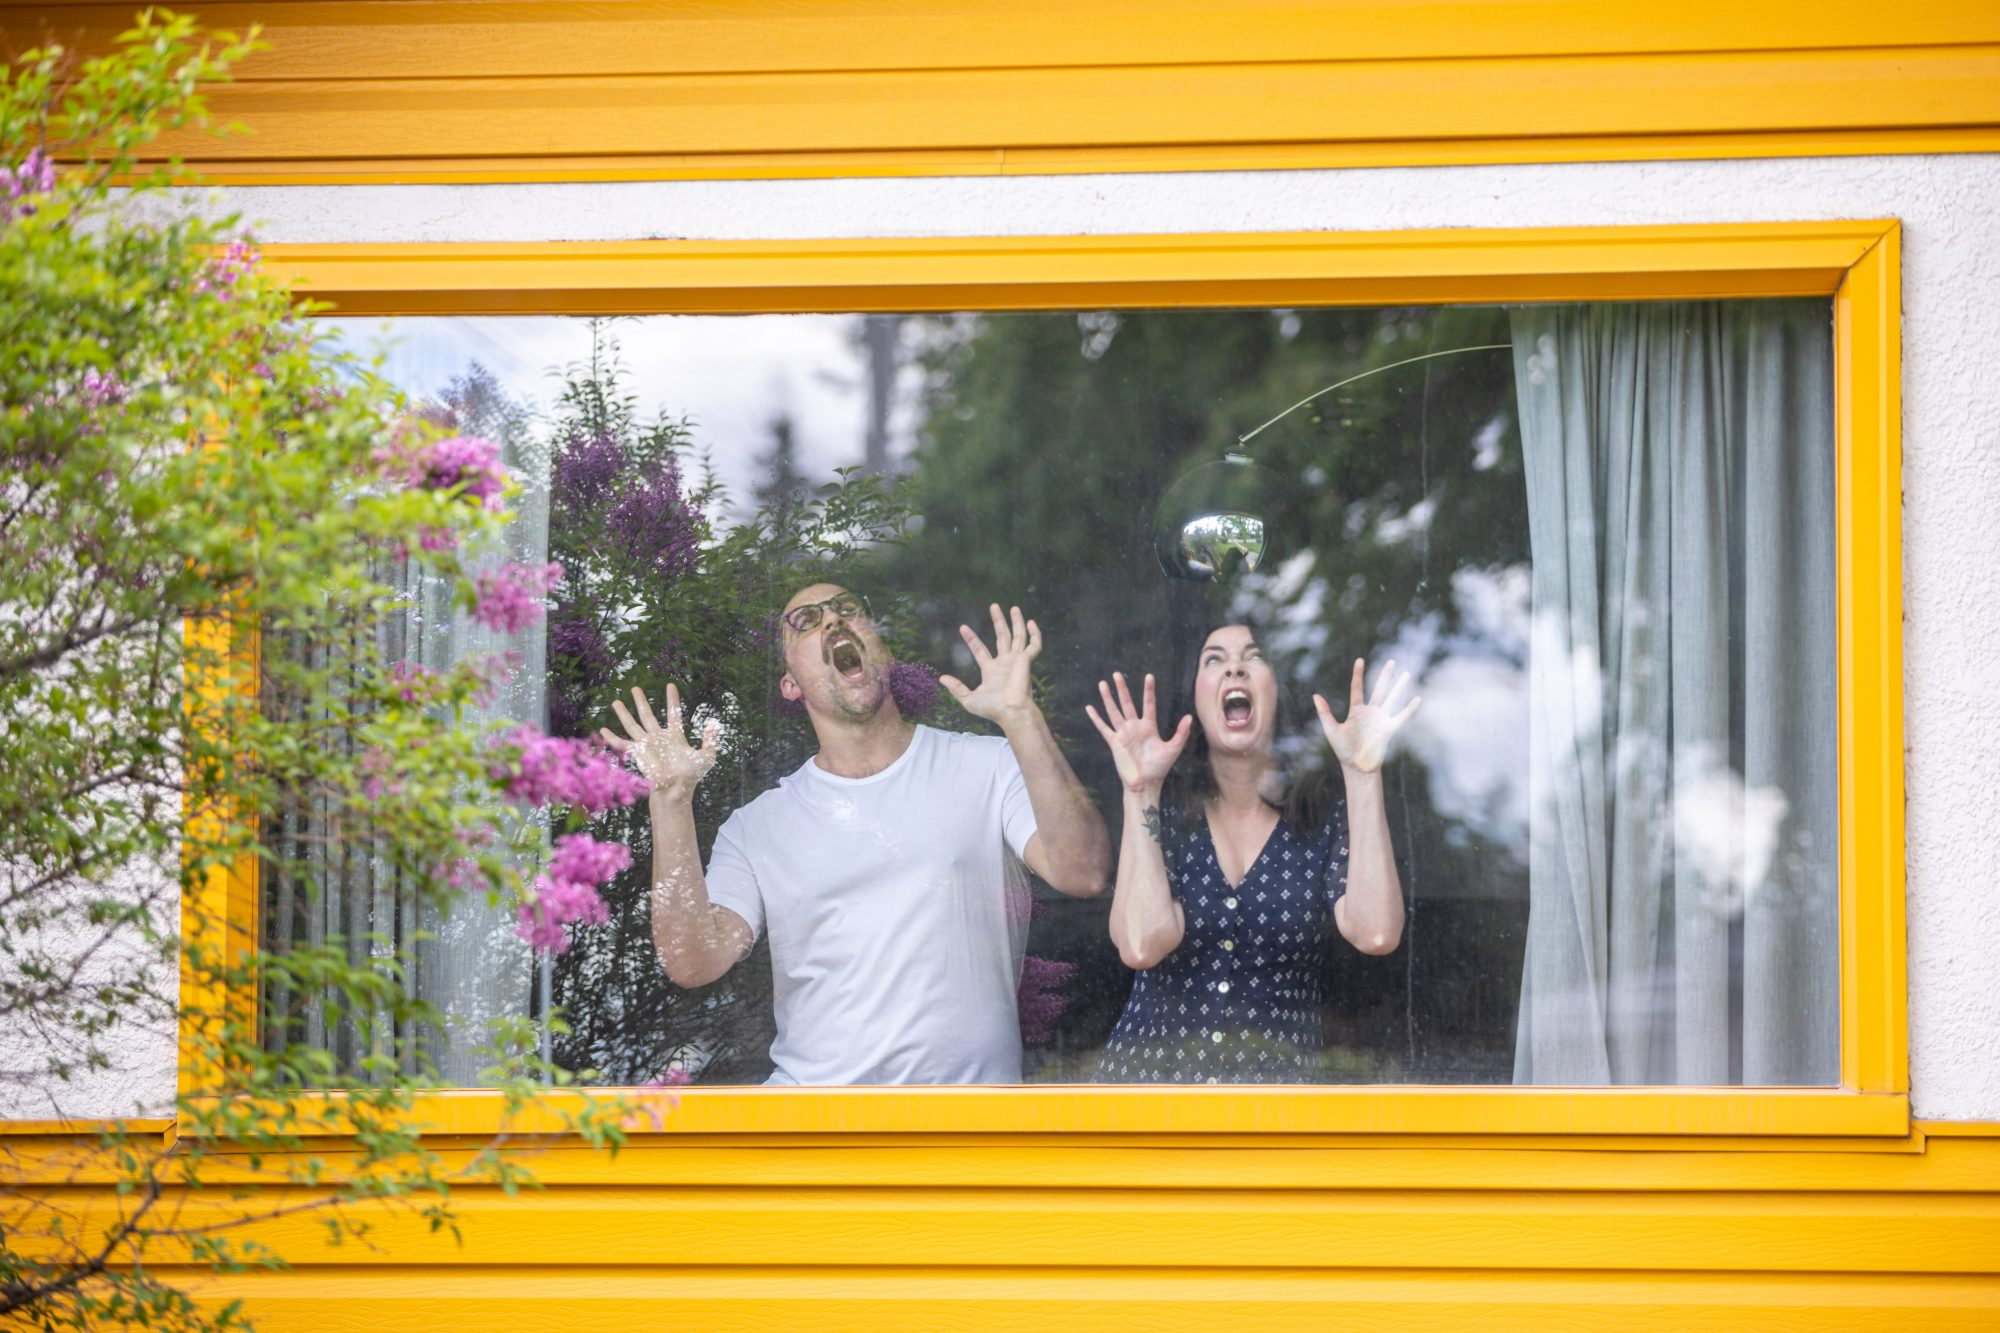 A portrait of a man and a woman making faces while looking out the window of their house